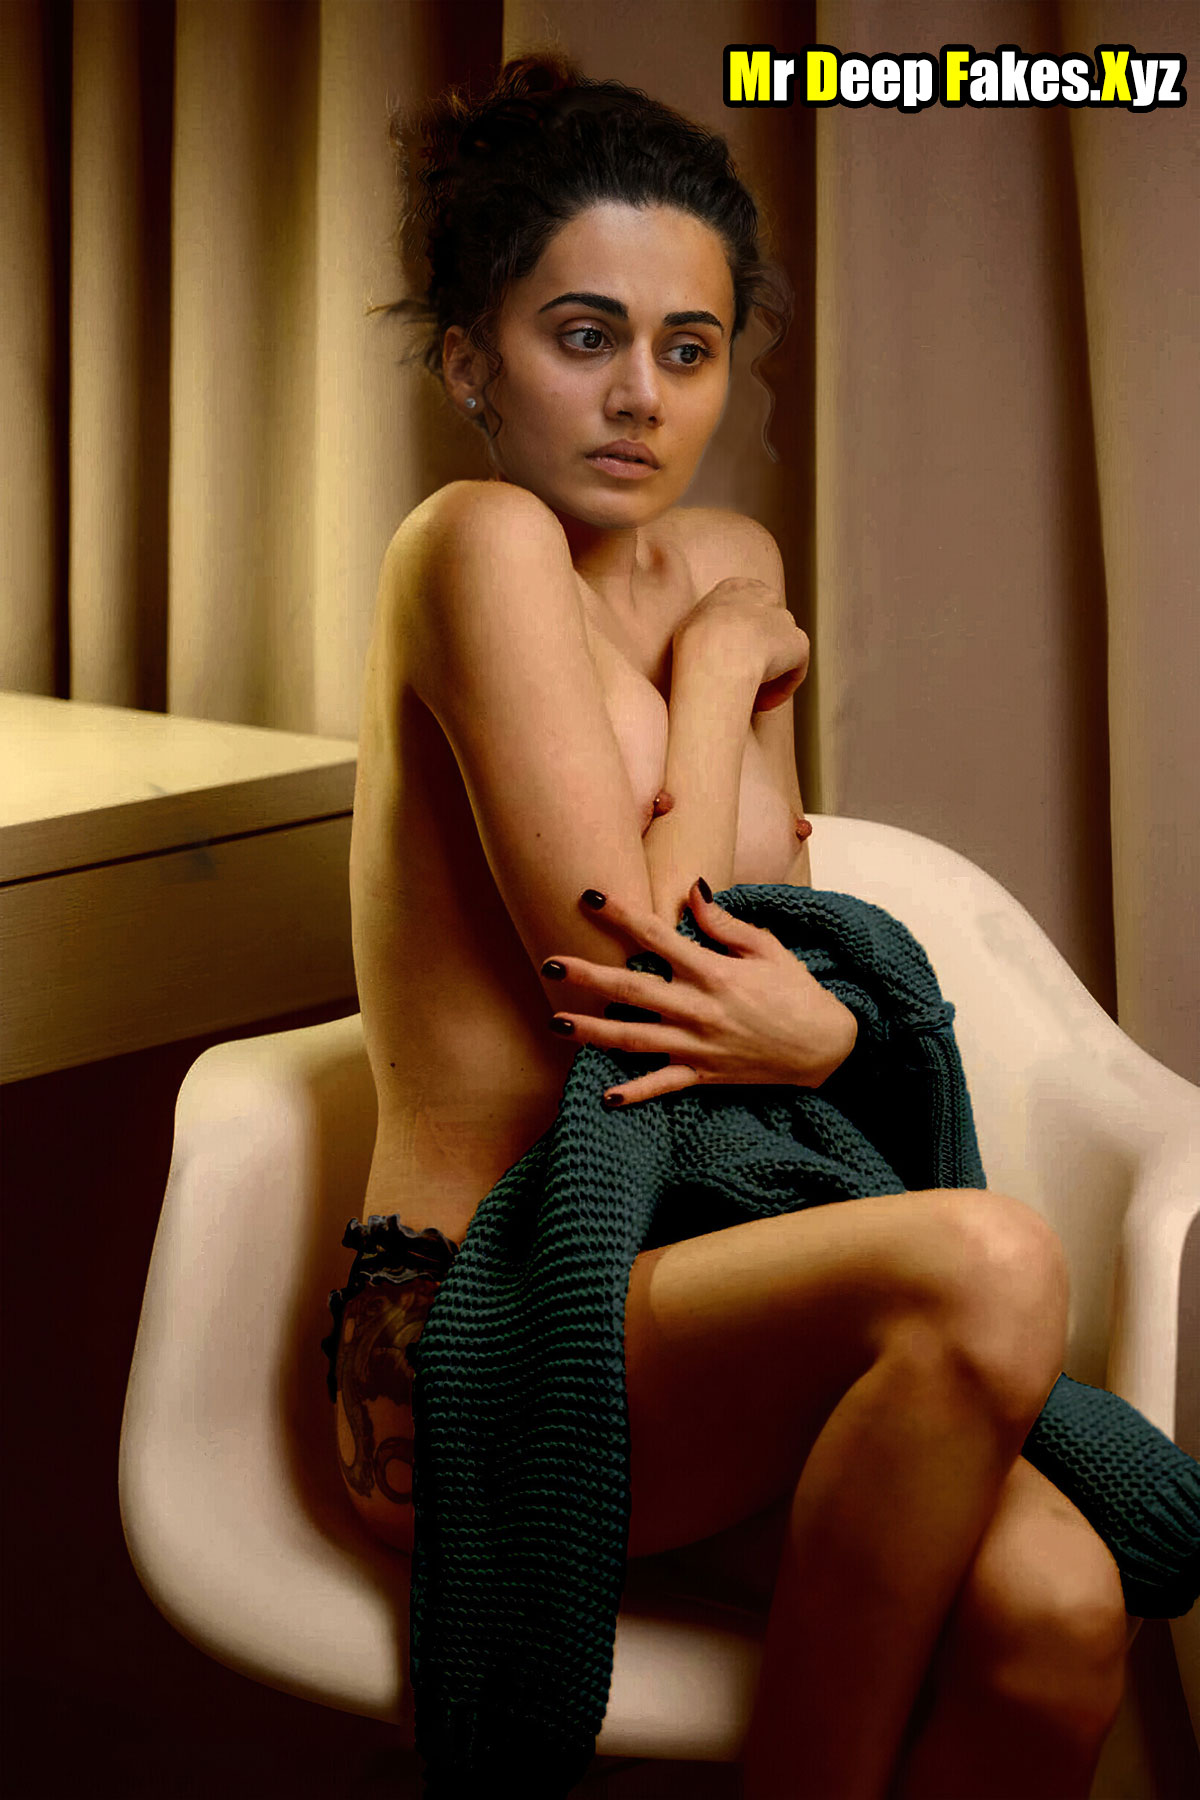 Taapsee Pannu topless small boobs nude nipple without bra image